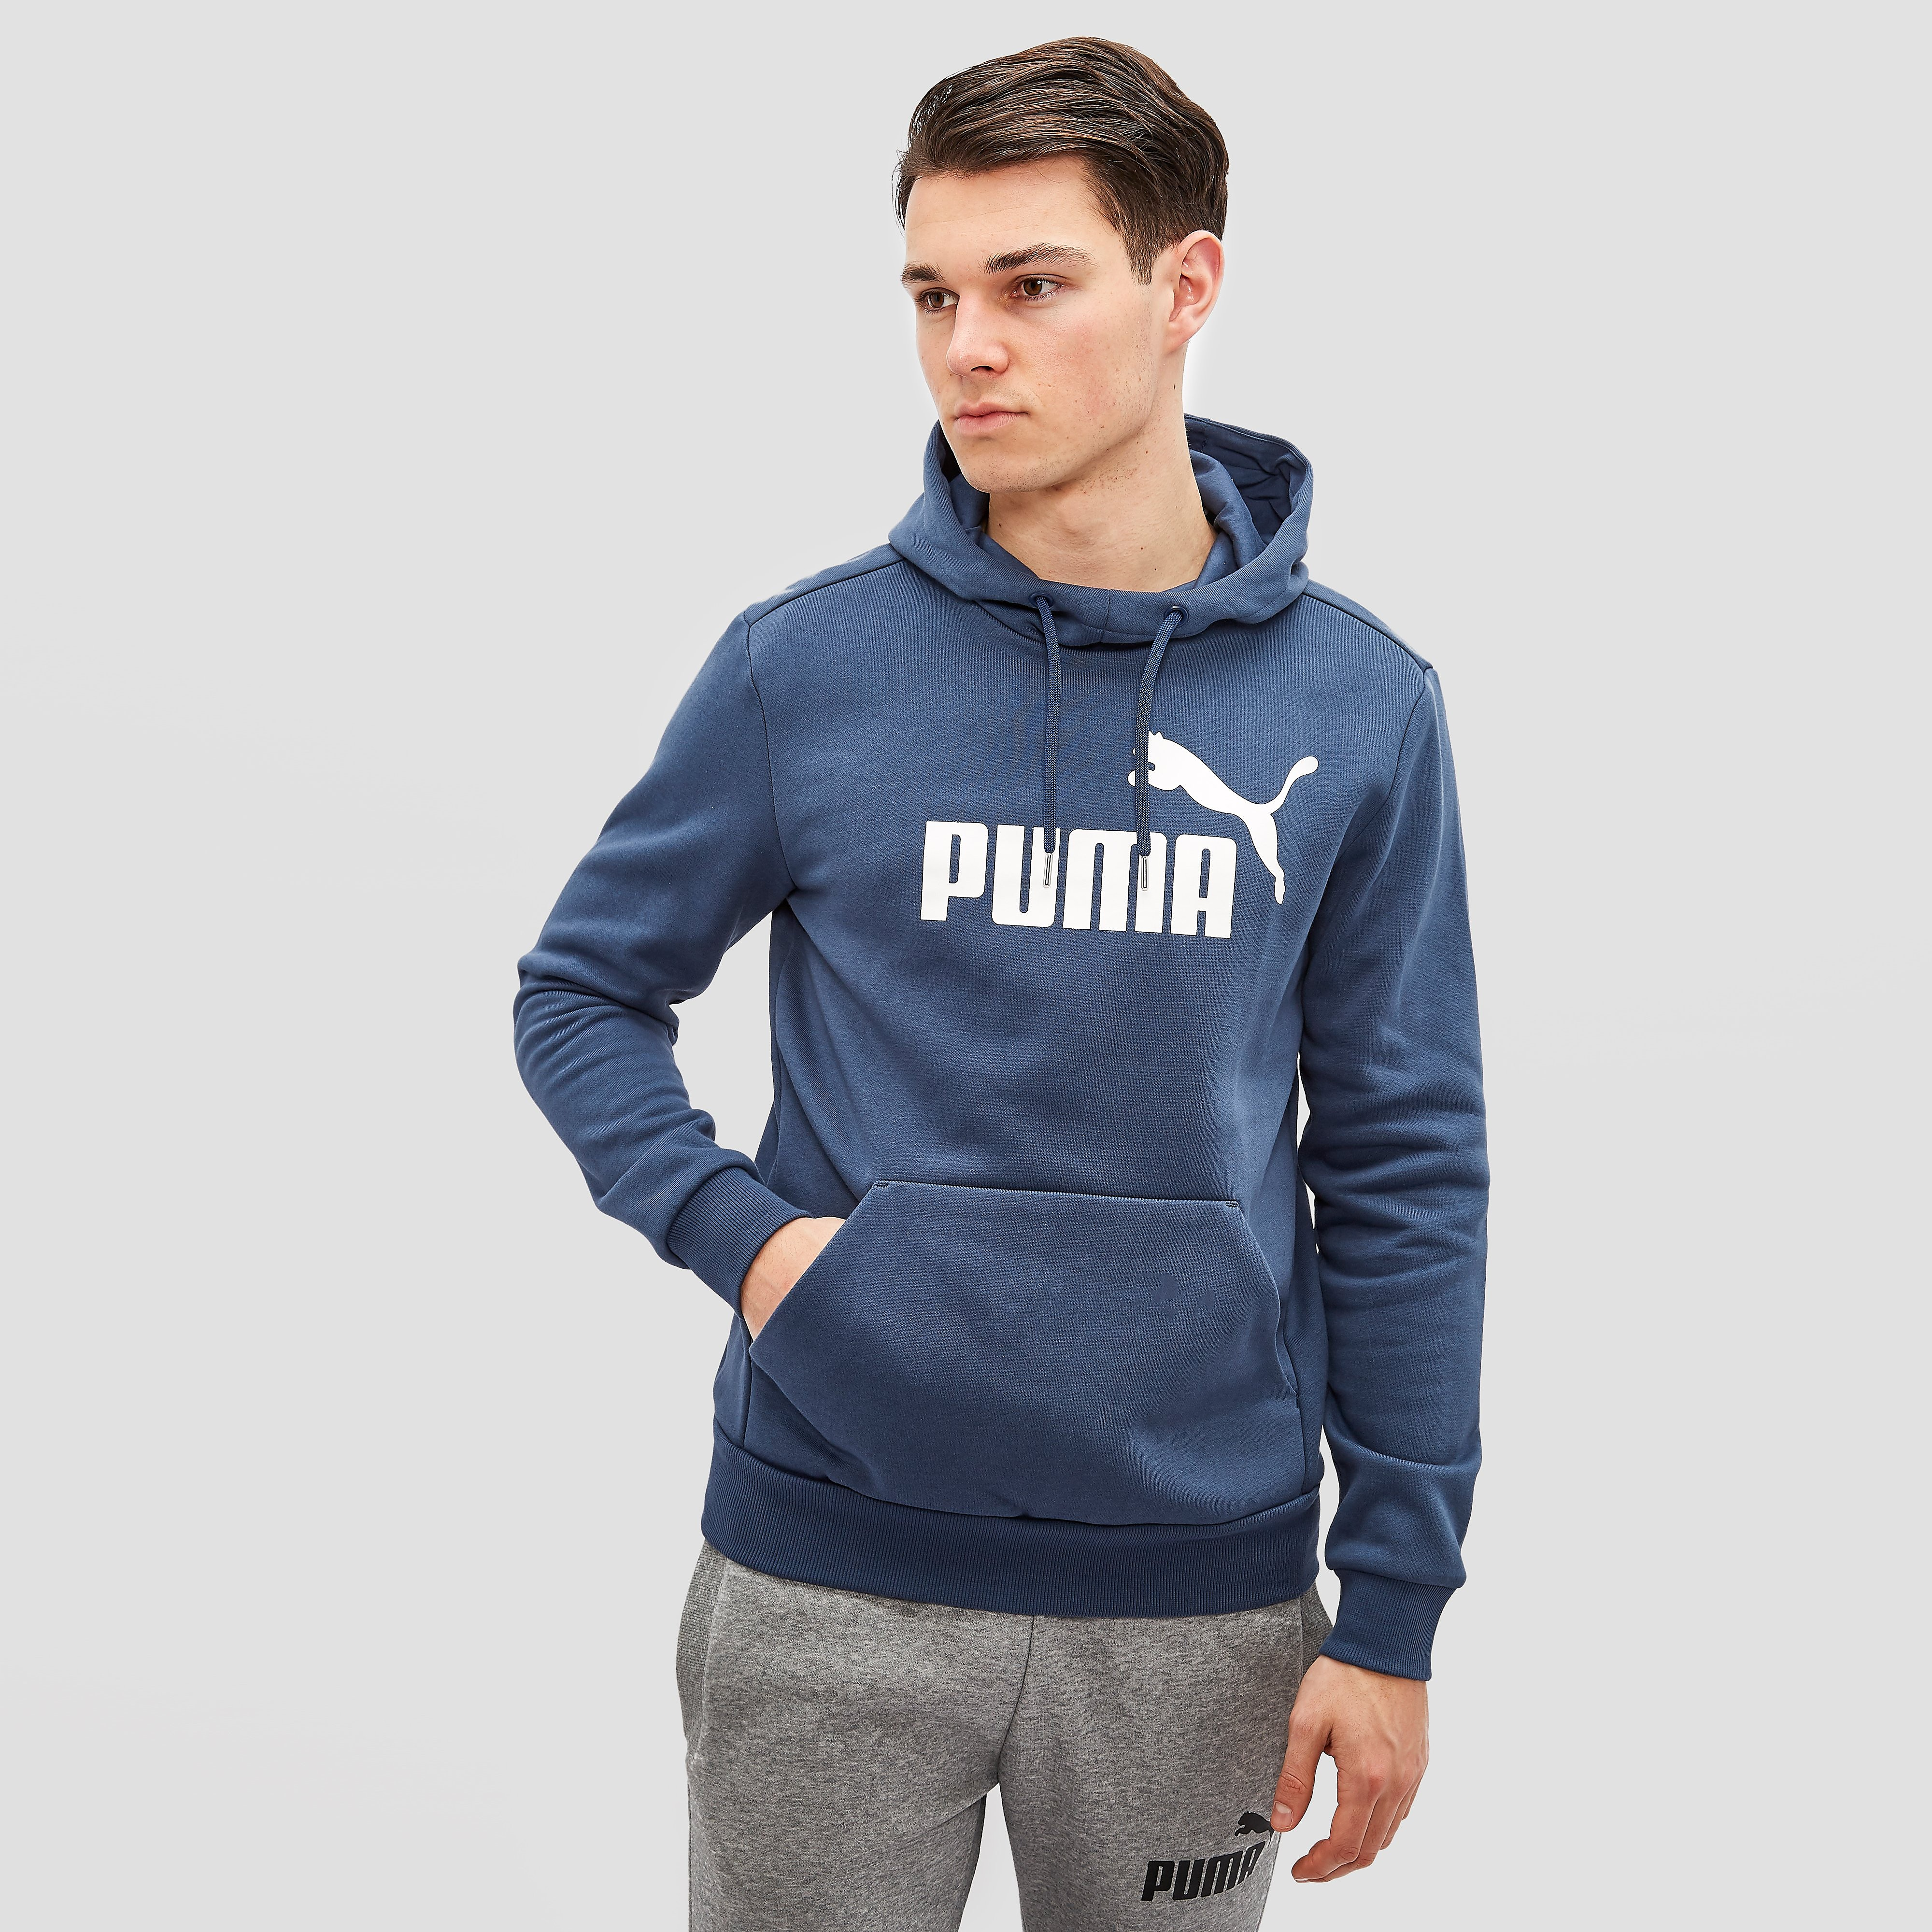 PUMA LOGO HOODED SWEAT